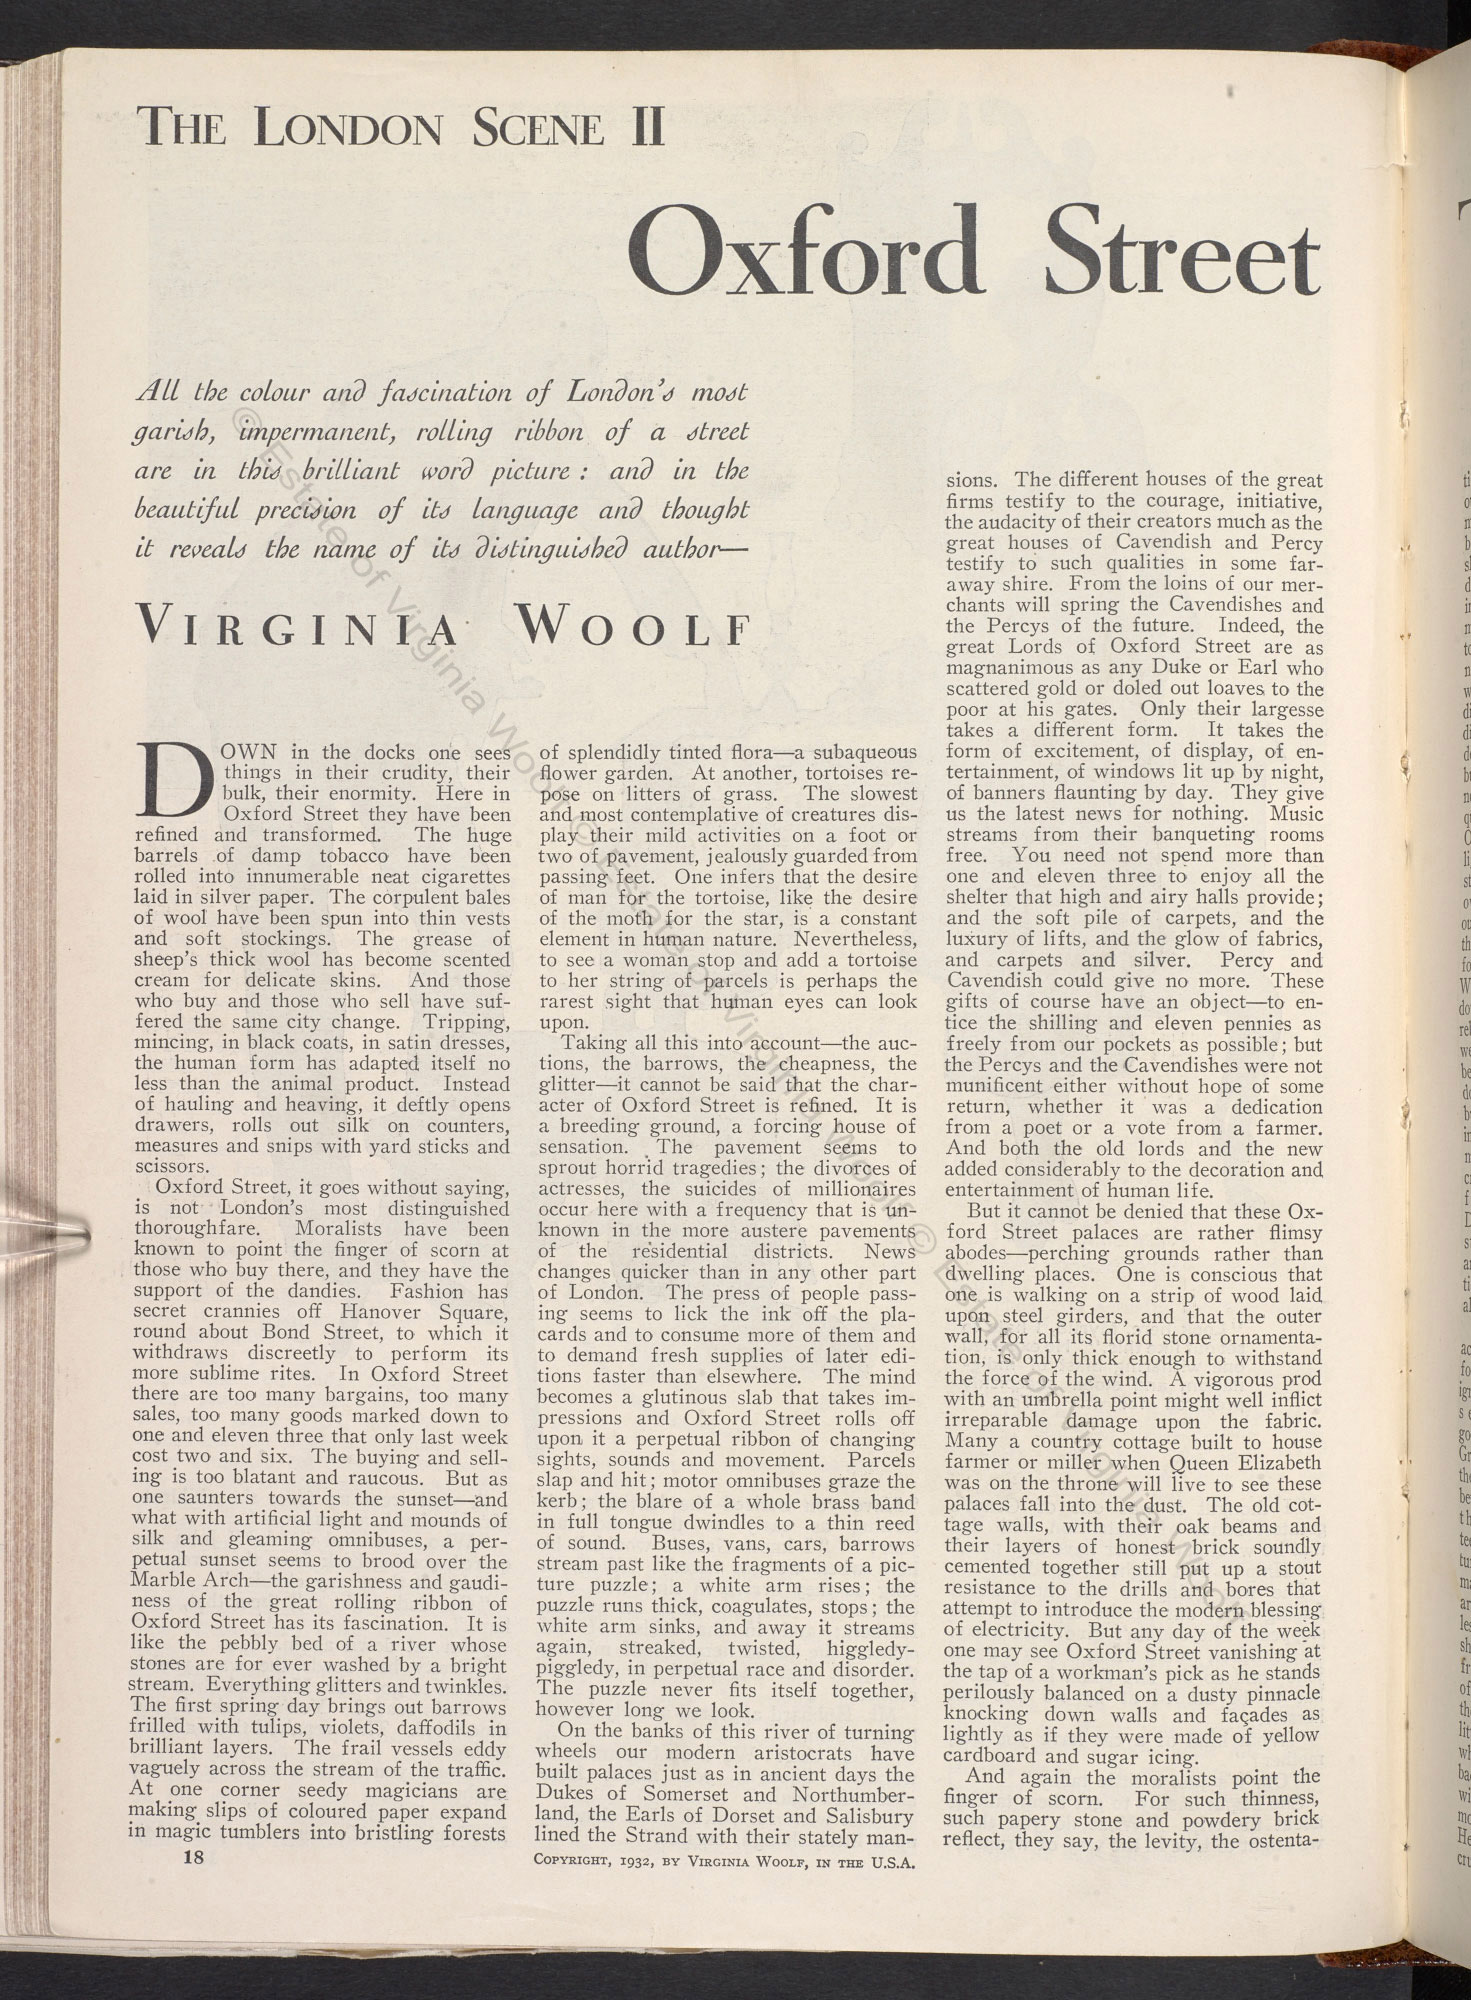 The London Scene essays by Virginia Woolf, from Good Housekeeping magazine